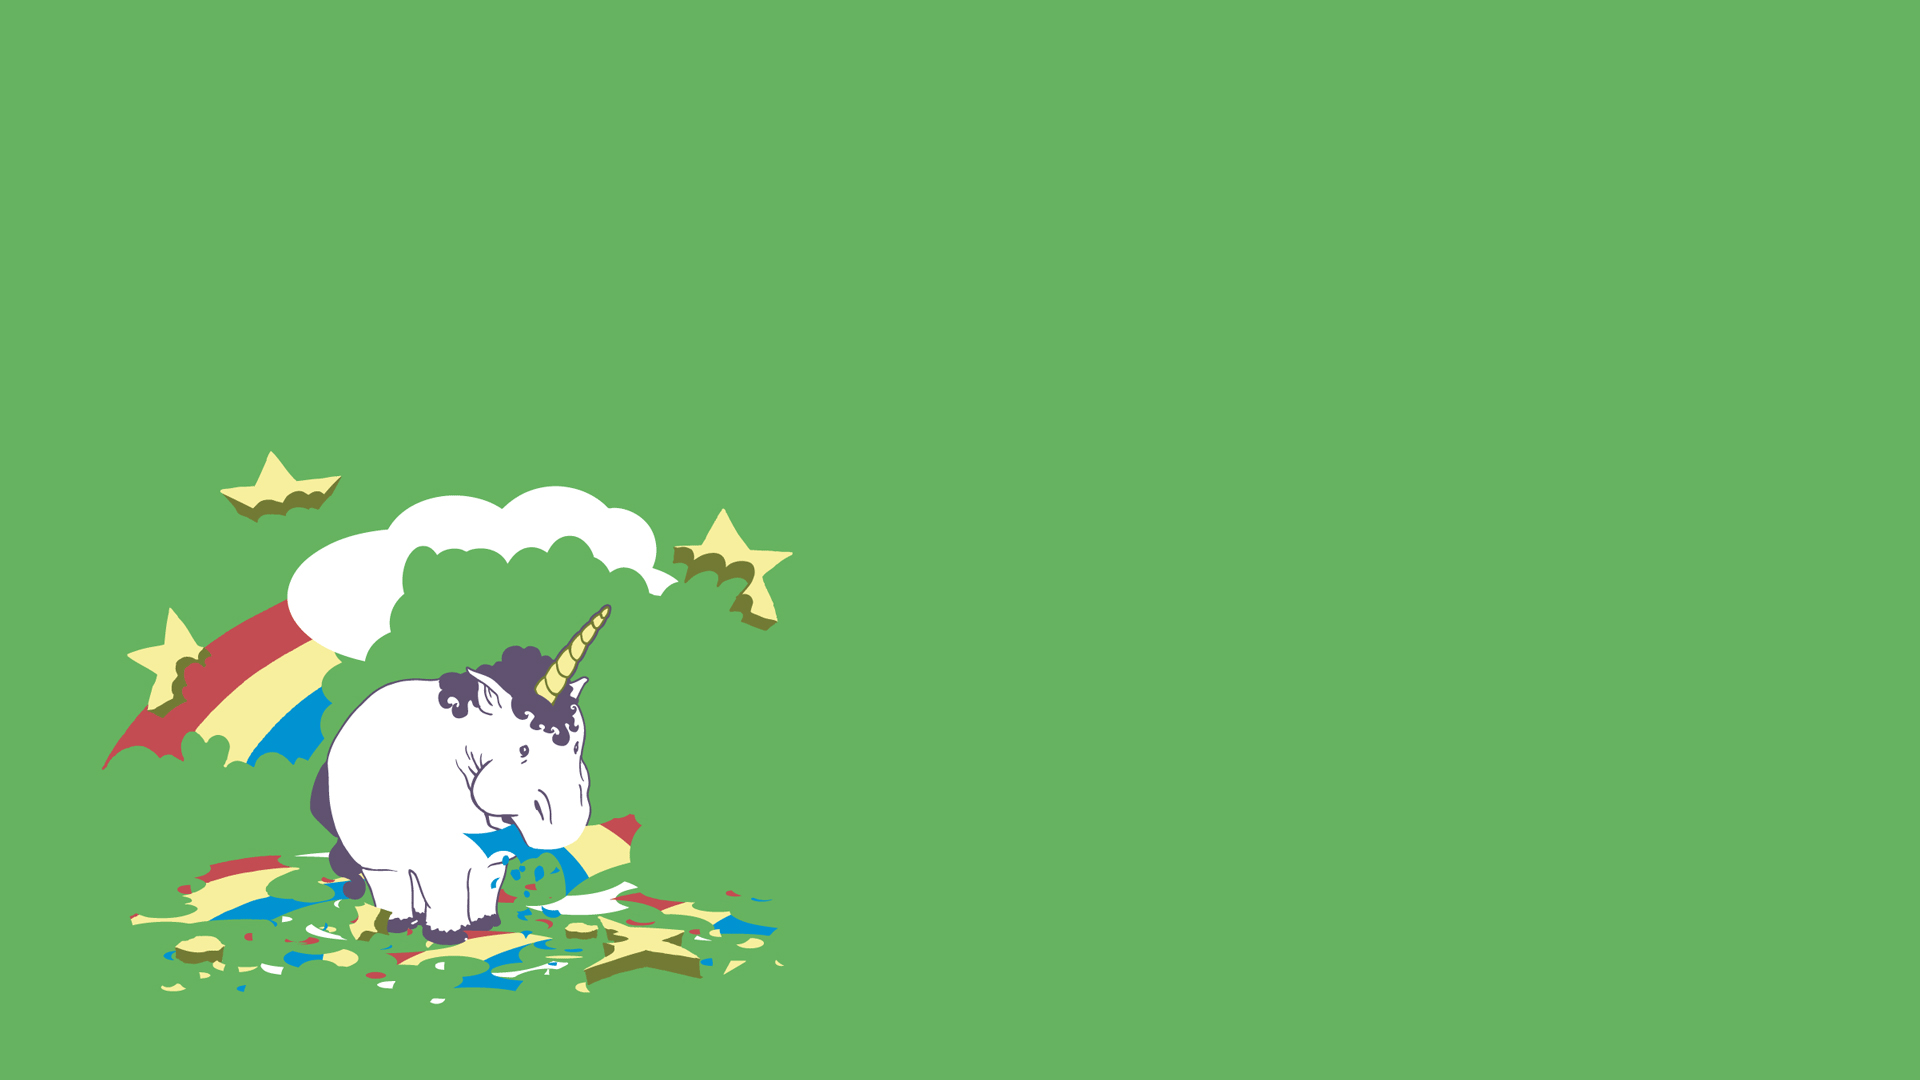 hd unicorn backgrounds